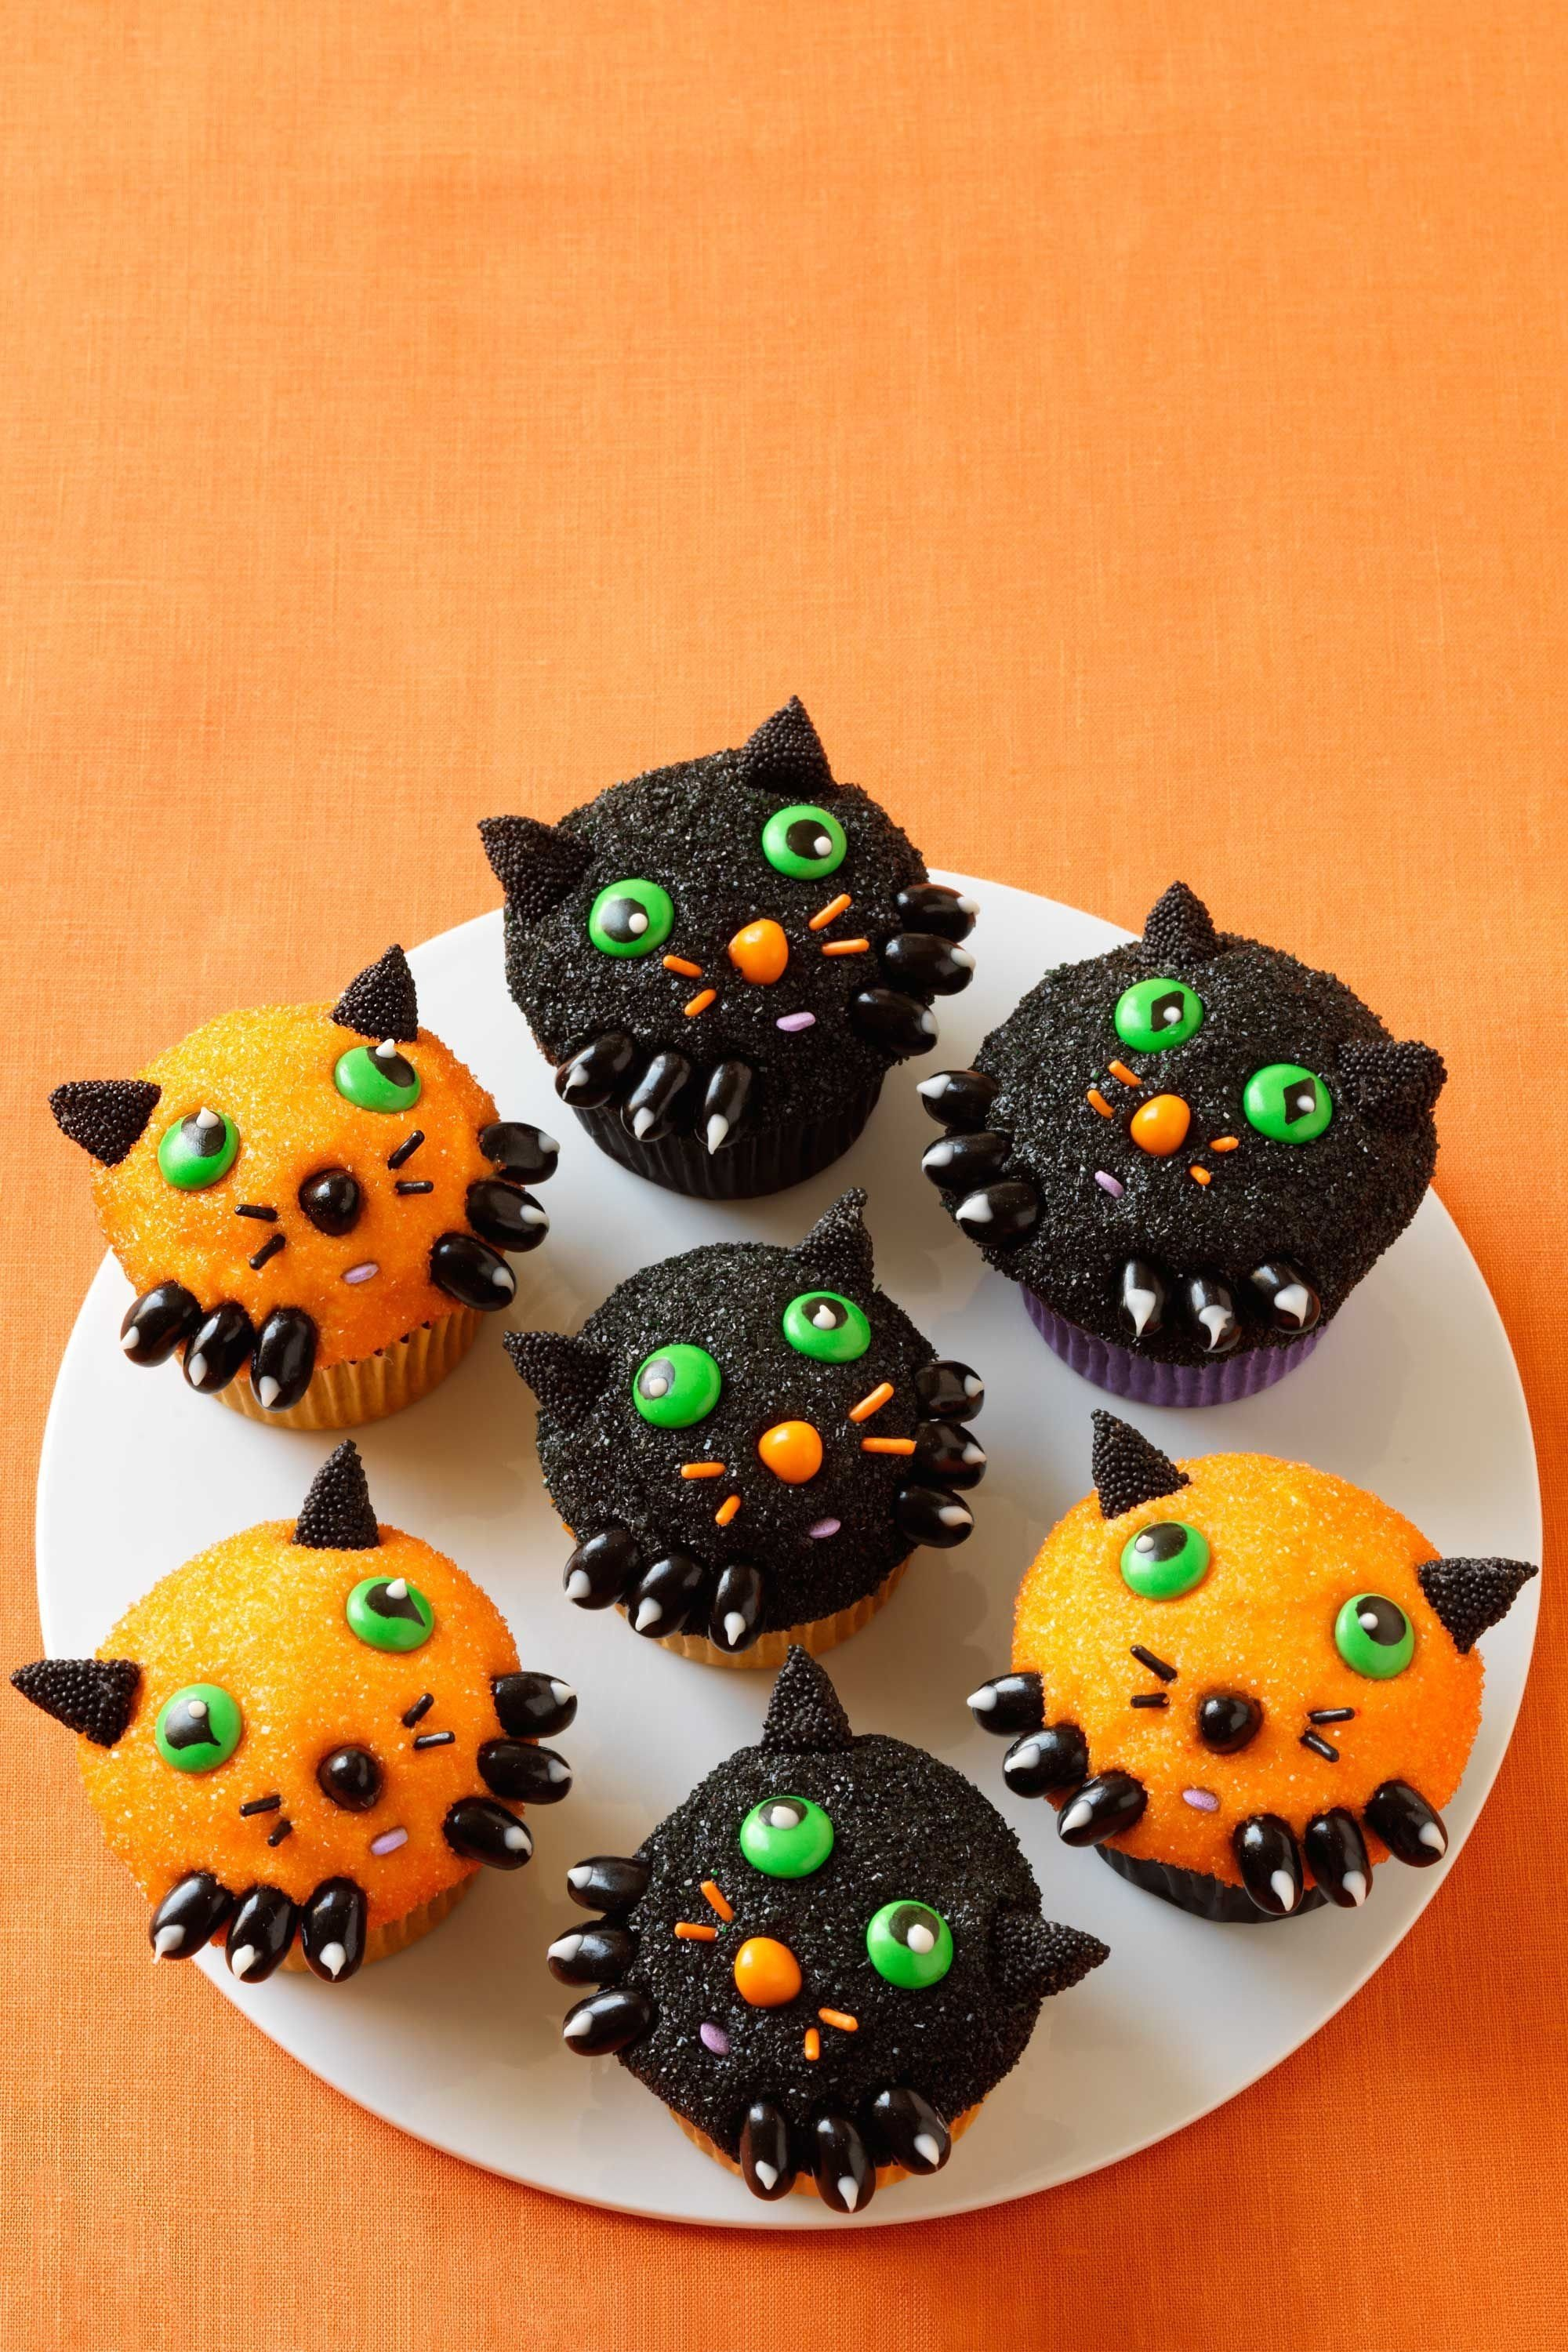 10 Elegant Halloween Cake Ideas For Kids 35 halloween cupcake ideas recipes for cute and scary halloween 2020